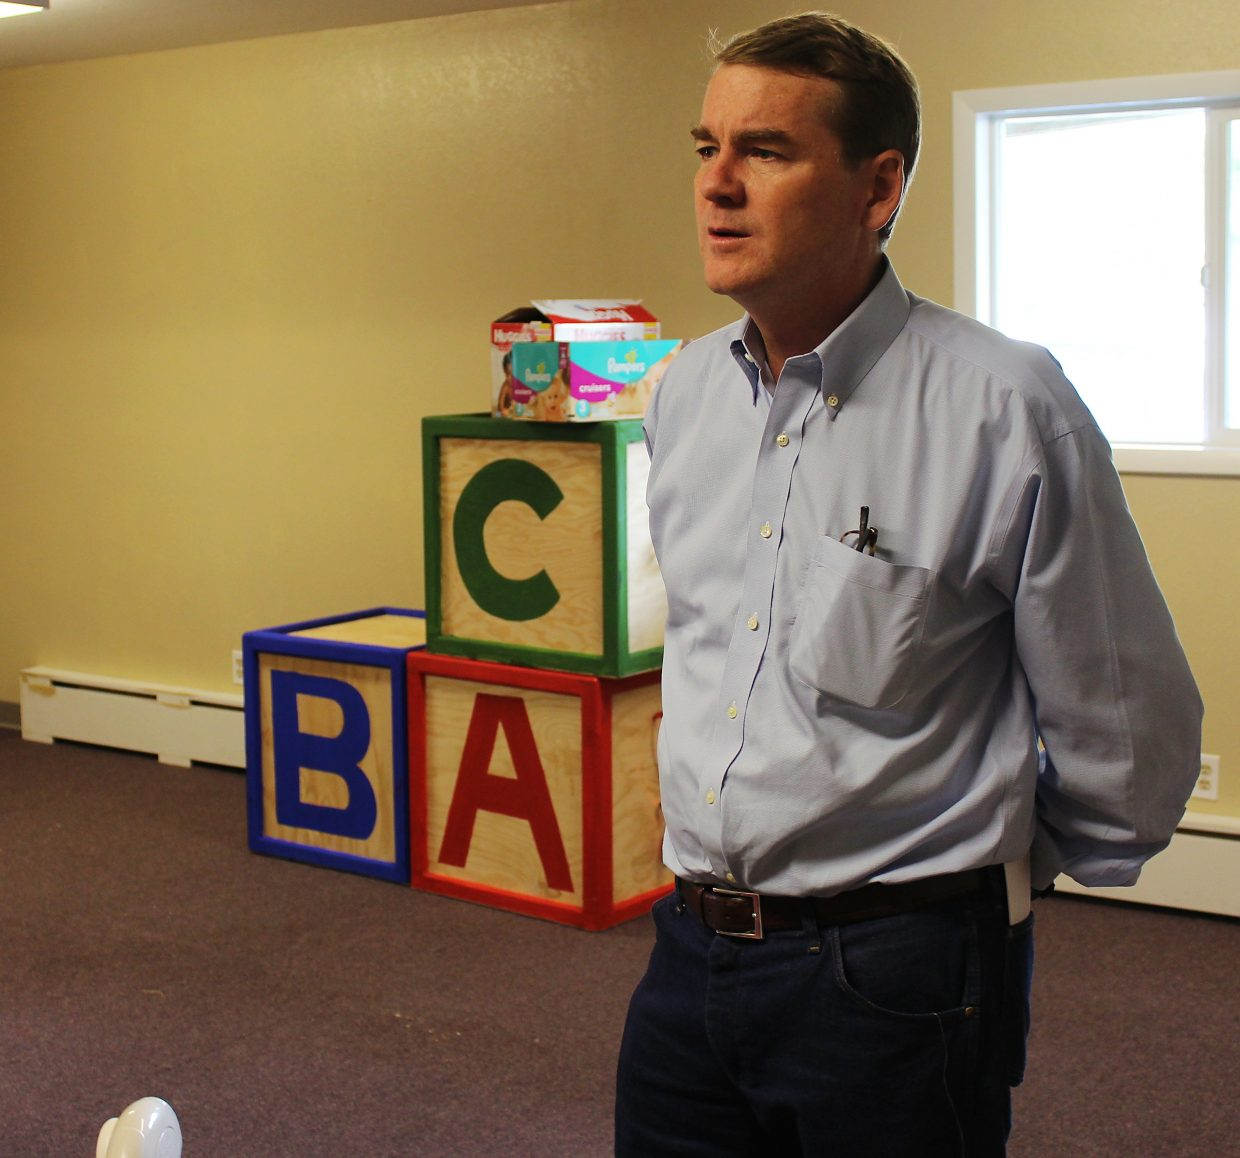 U.S. Sen. Michael Bennet tours Caring Kids Preschool in Rifle Monday.